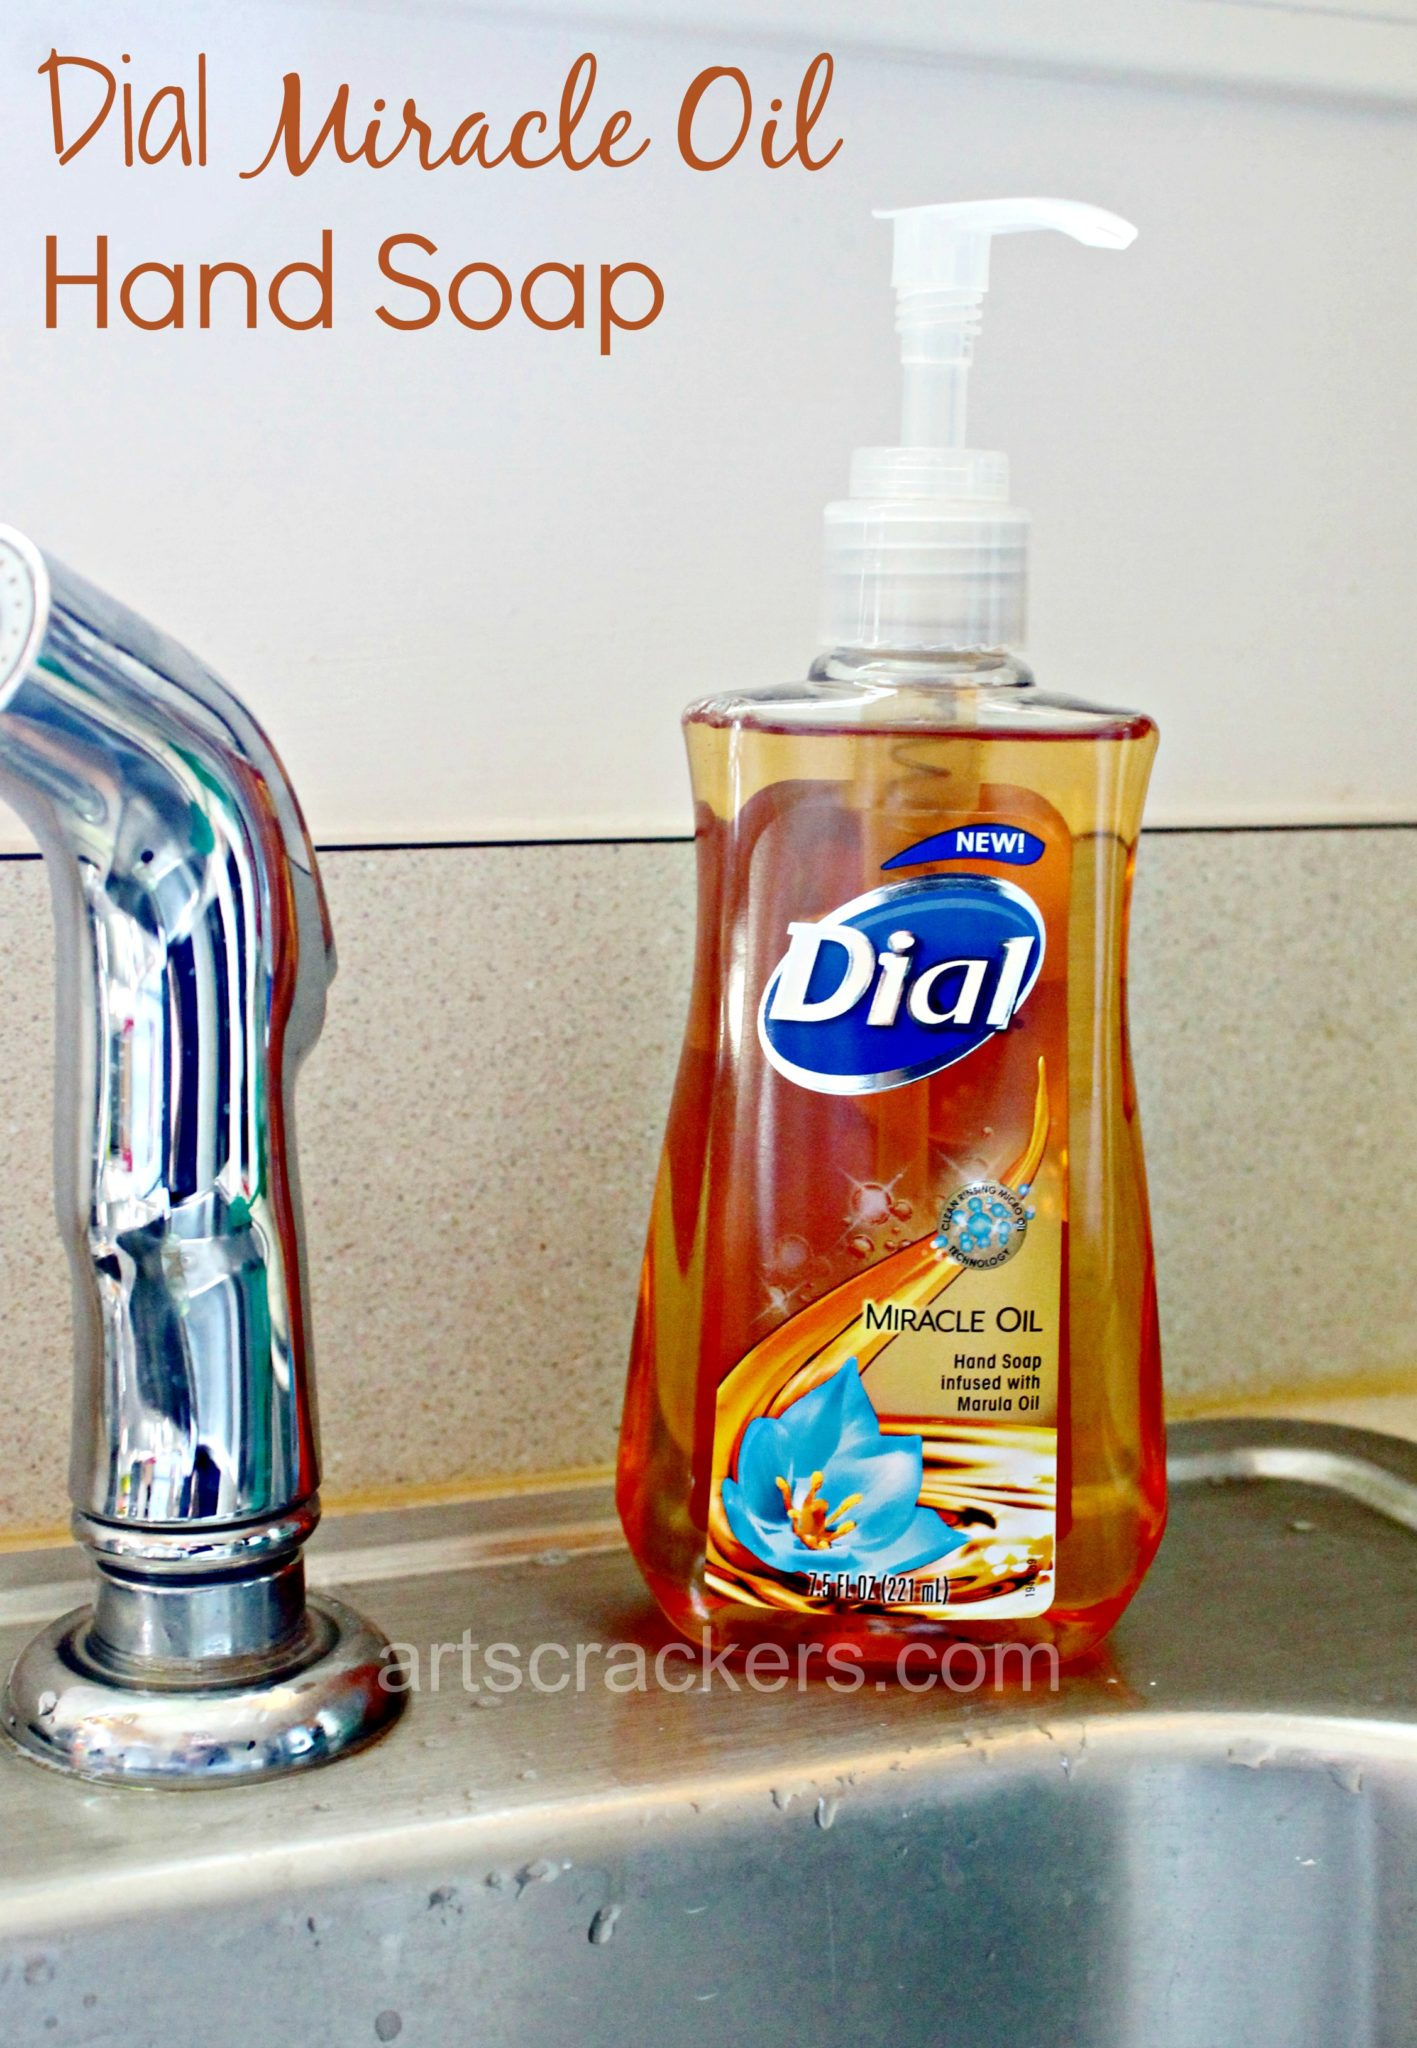 Dial Miracle Oil  Hand Soap with Marula Oil. Click the picture to read the review.